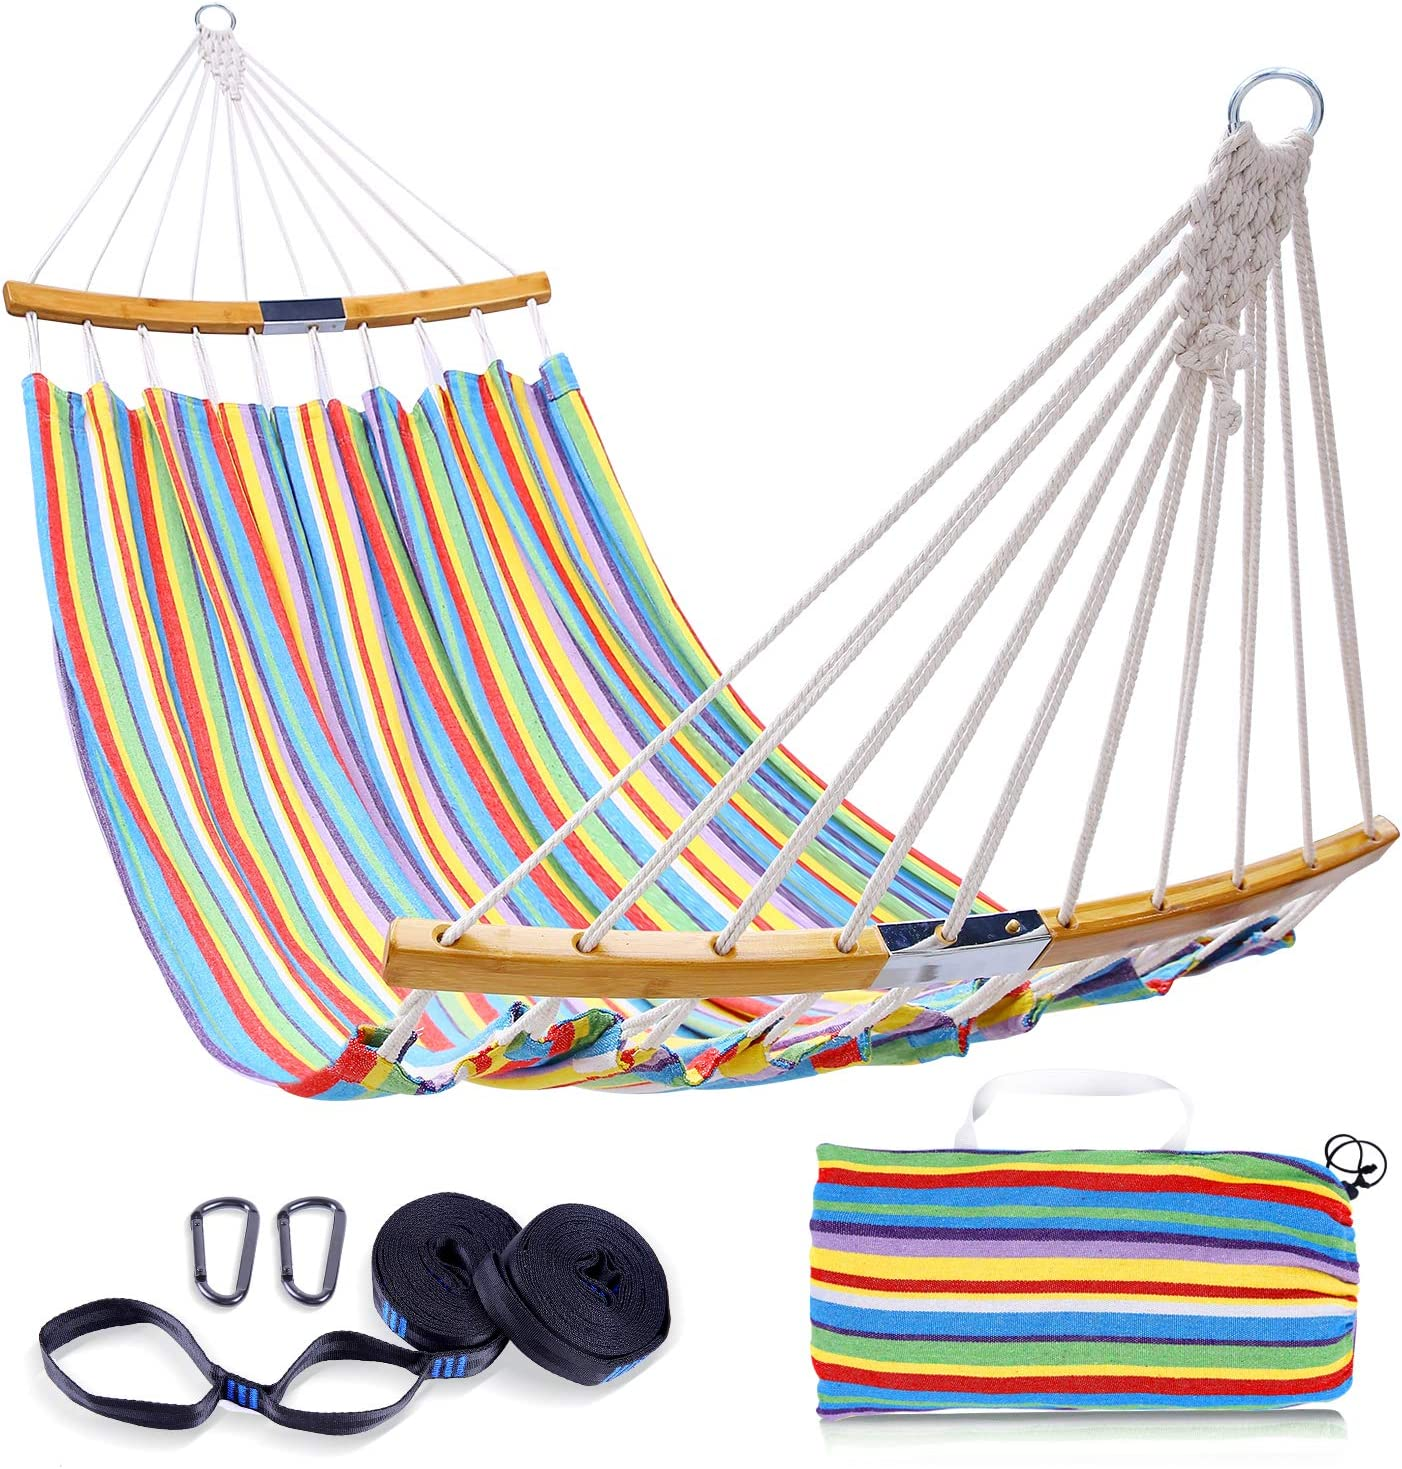 Double Hammock Swing with Tree Straps, Ohuhu Folding Curved-Bar Design 2020 Upgraded Space-Saving Bamboo Hammock with Carrying Bag, Portable Hammock for Patio, Backyard, Camping, Beach, Colorful Stripe : Garden & Outdoor